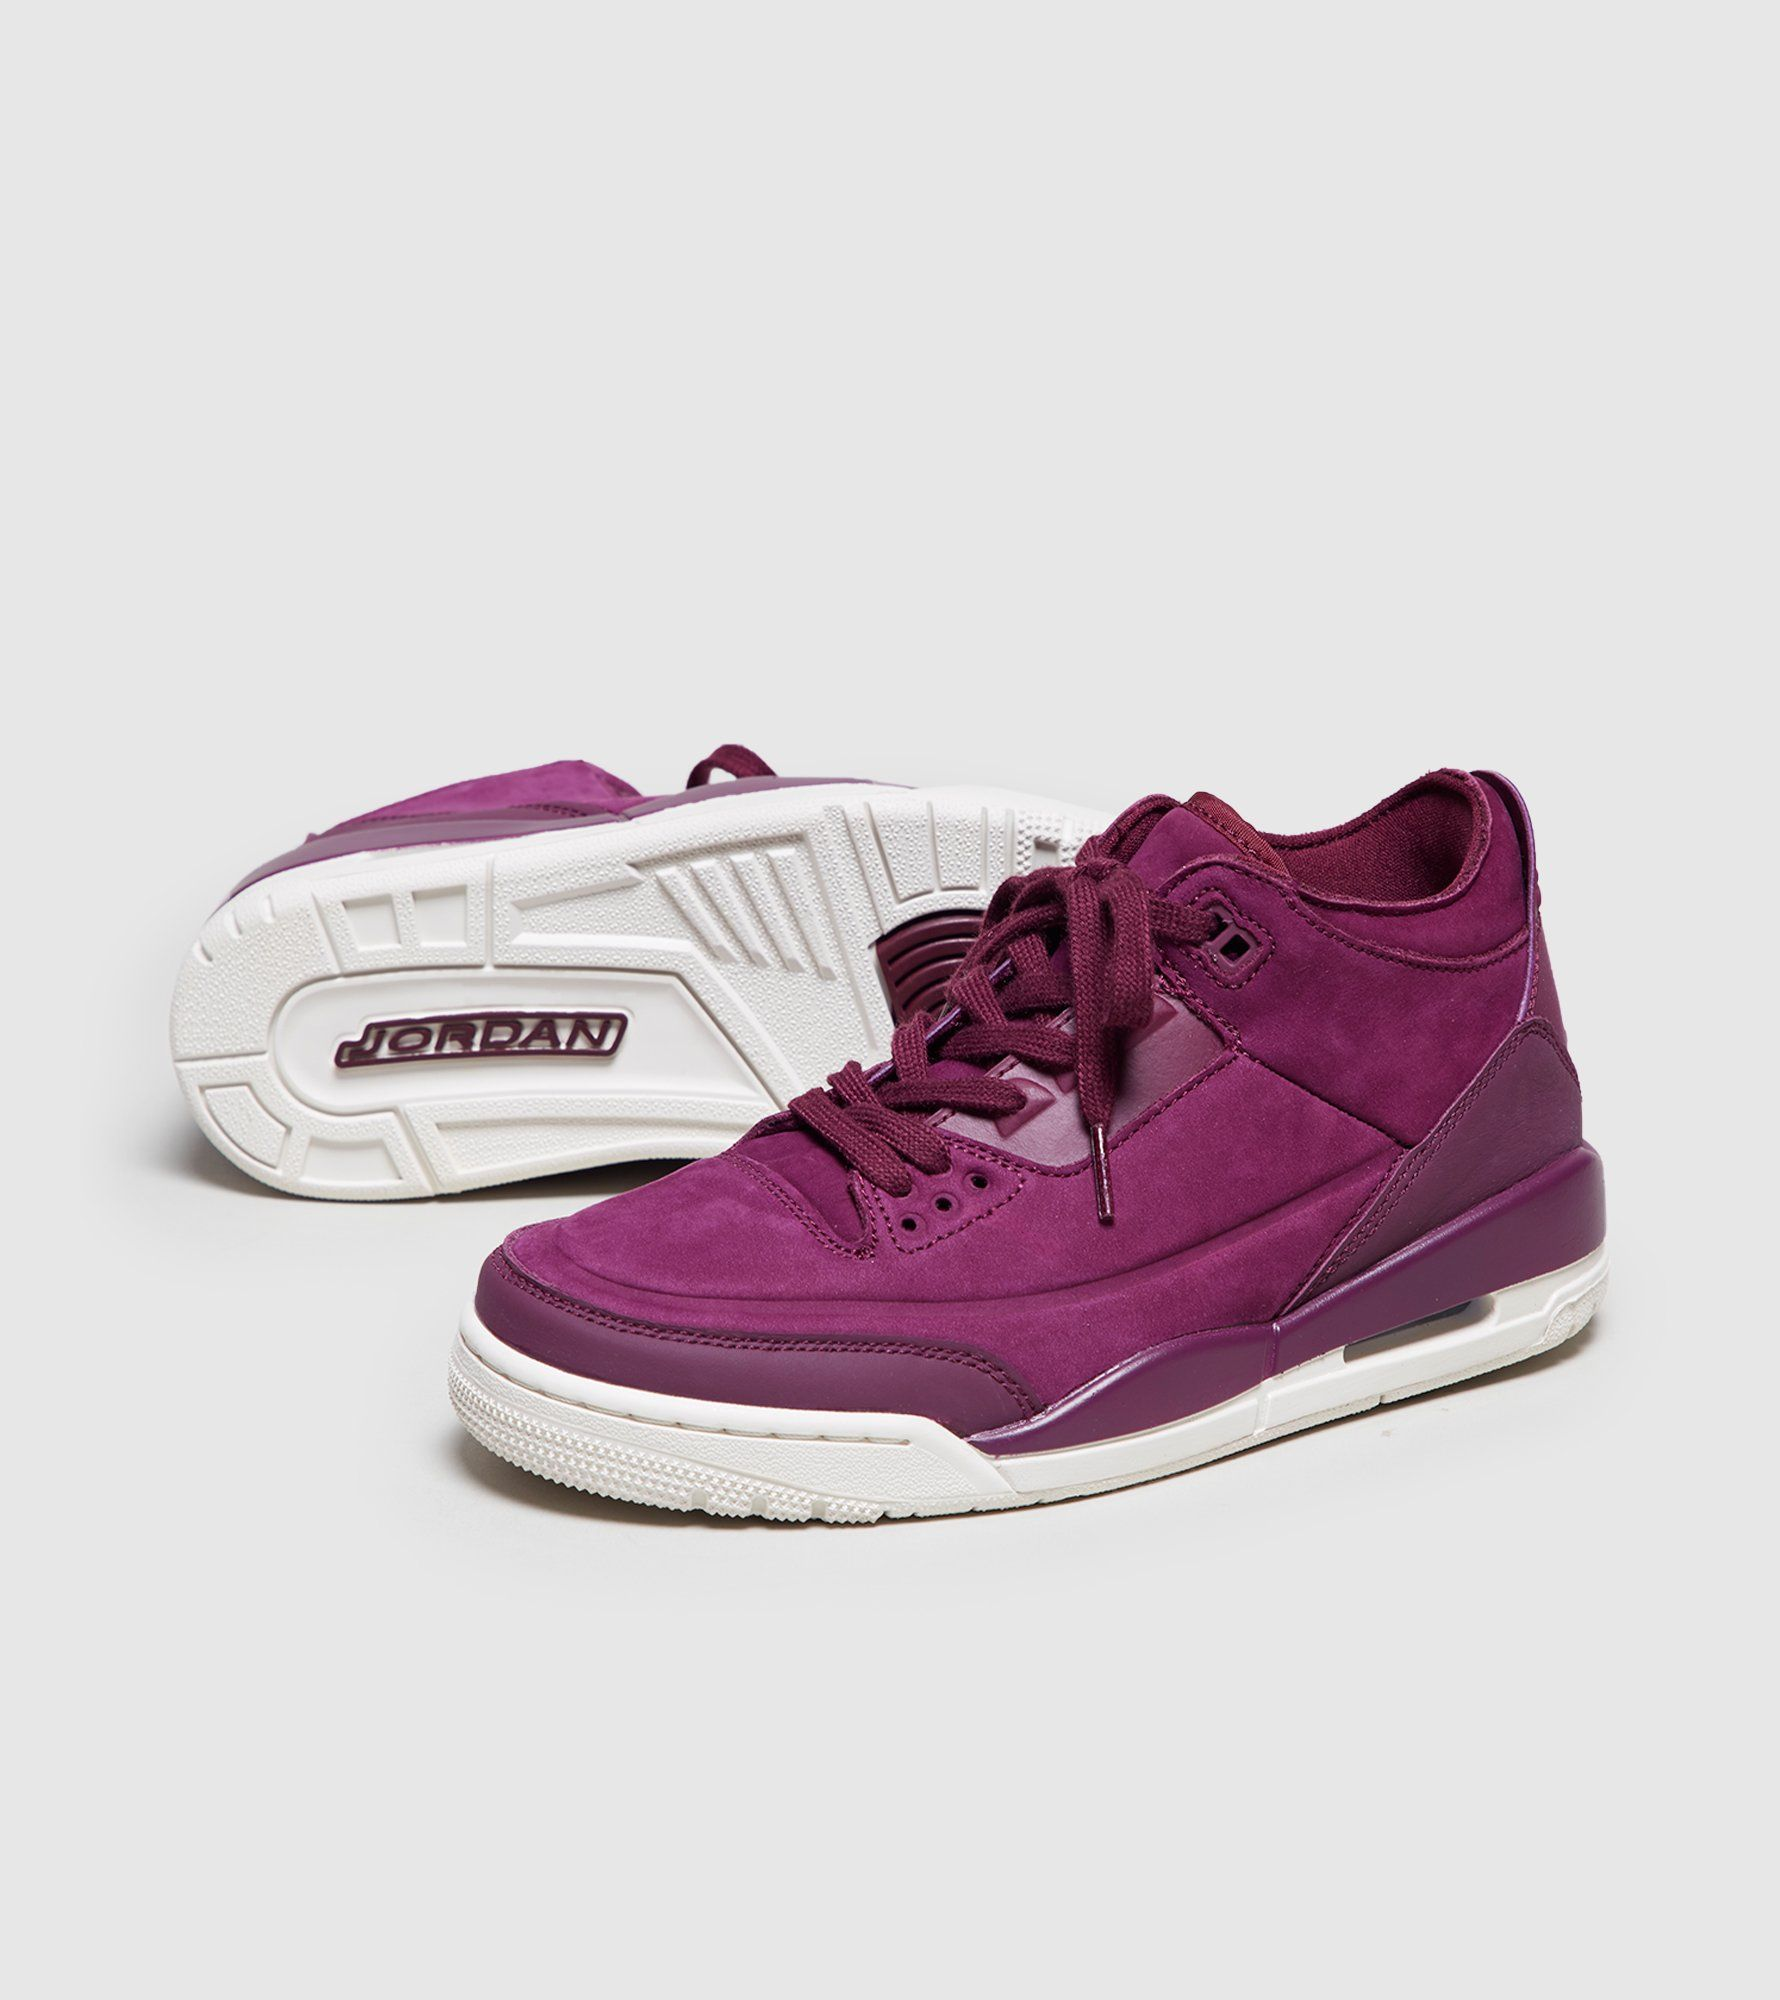 Jordan Air 3 Retro SE Women's